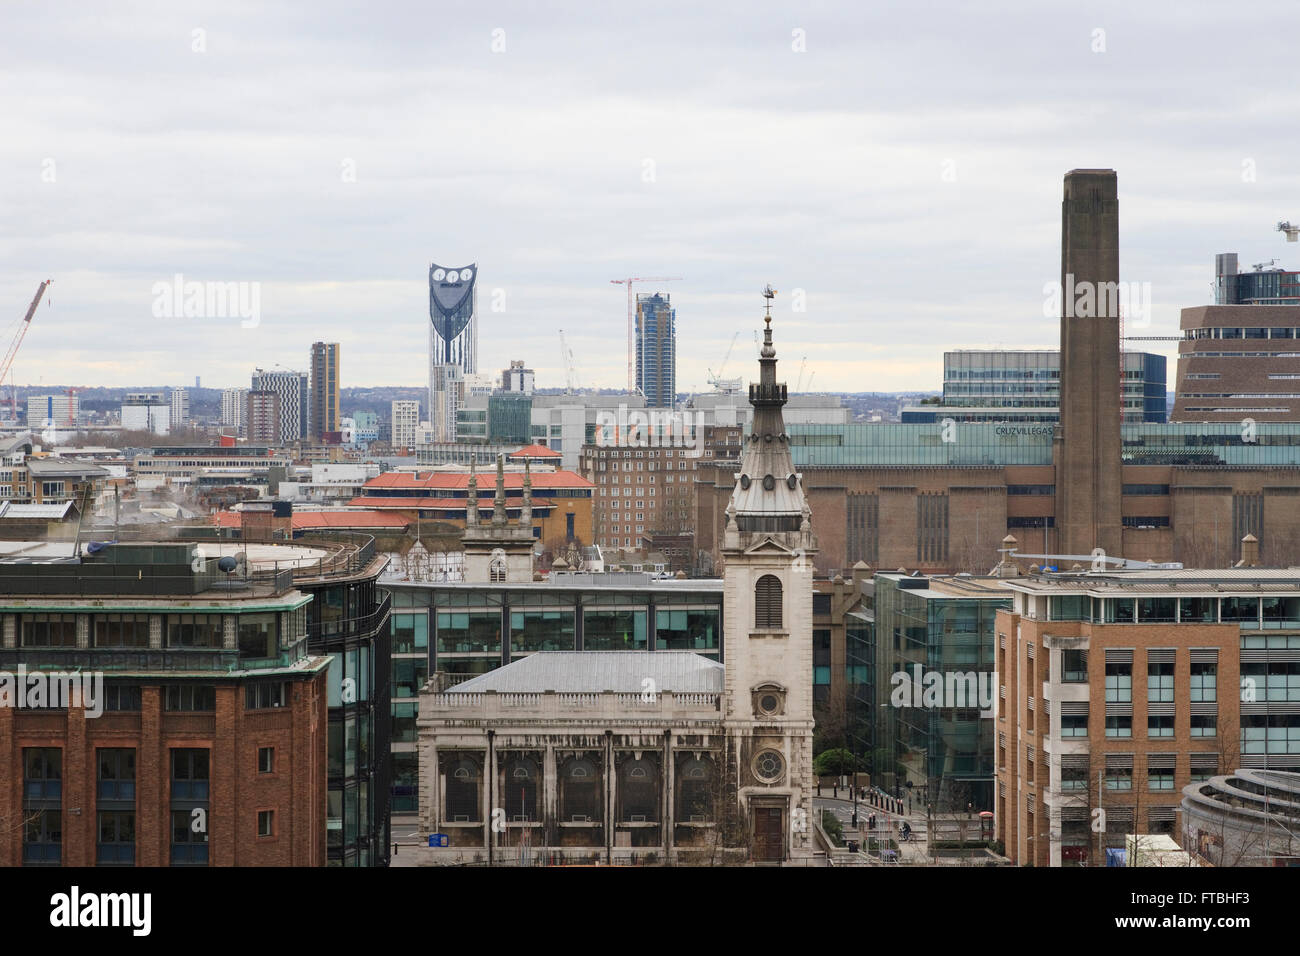 View from the roof top of One New Change in London, England. - Stock Image